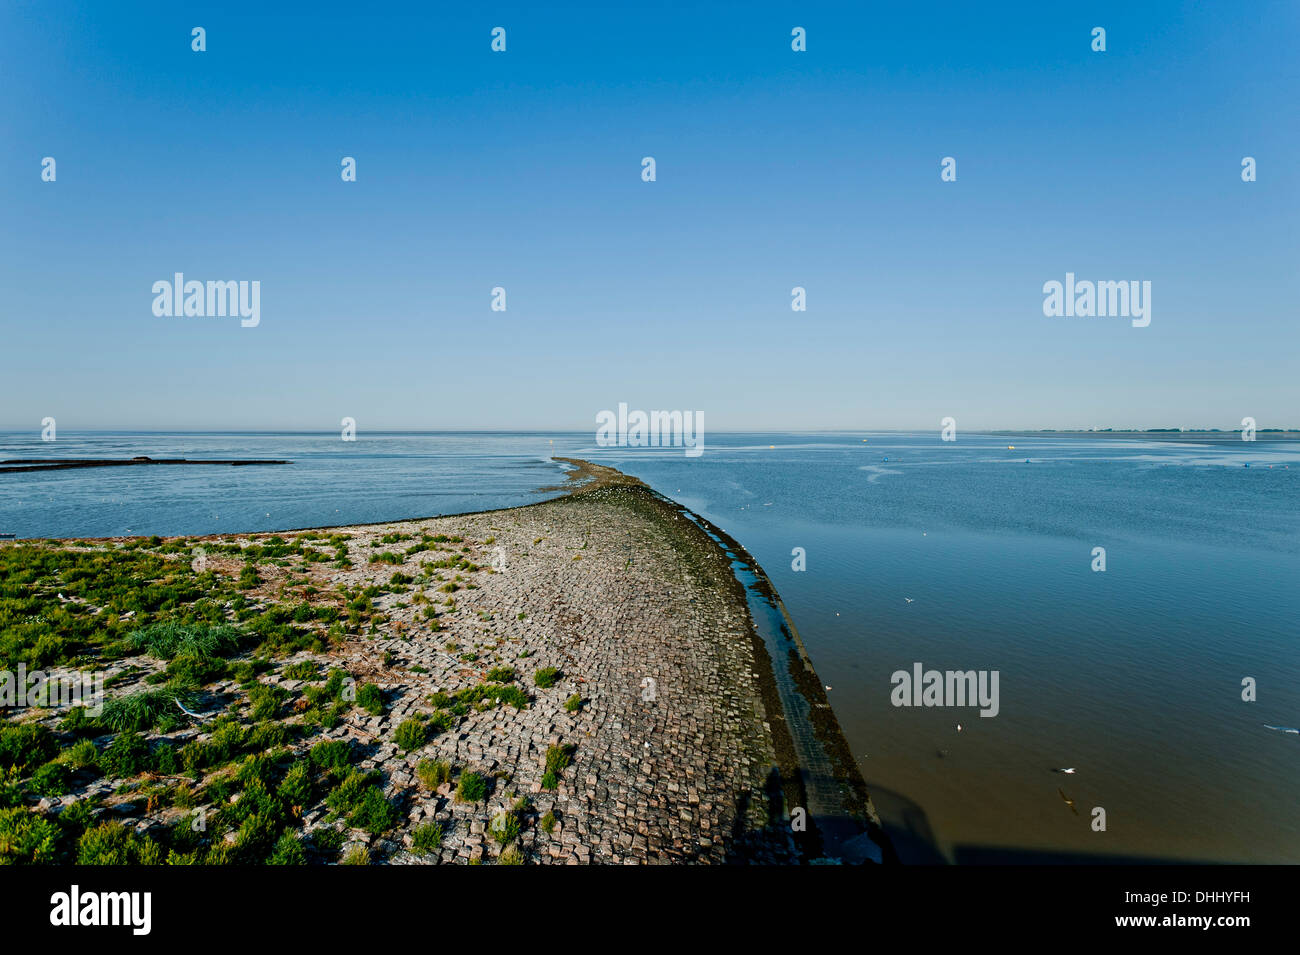 At the Eider Barrage, Nordsee, Schleswig-Holstein, Germany - Stock Image